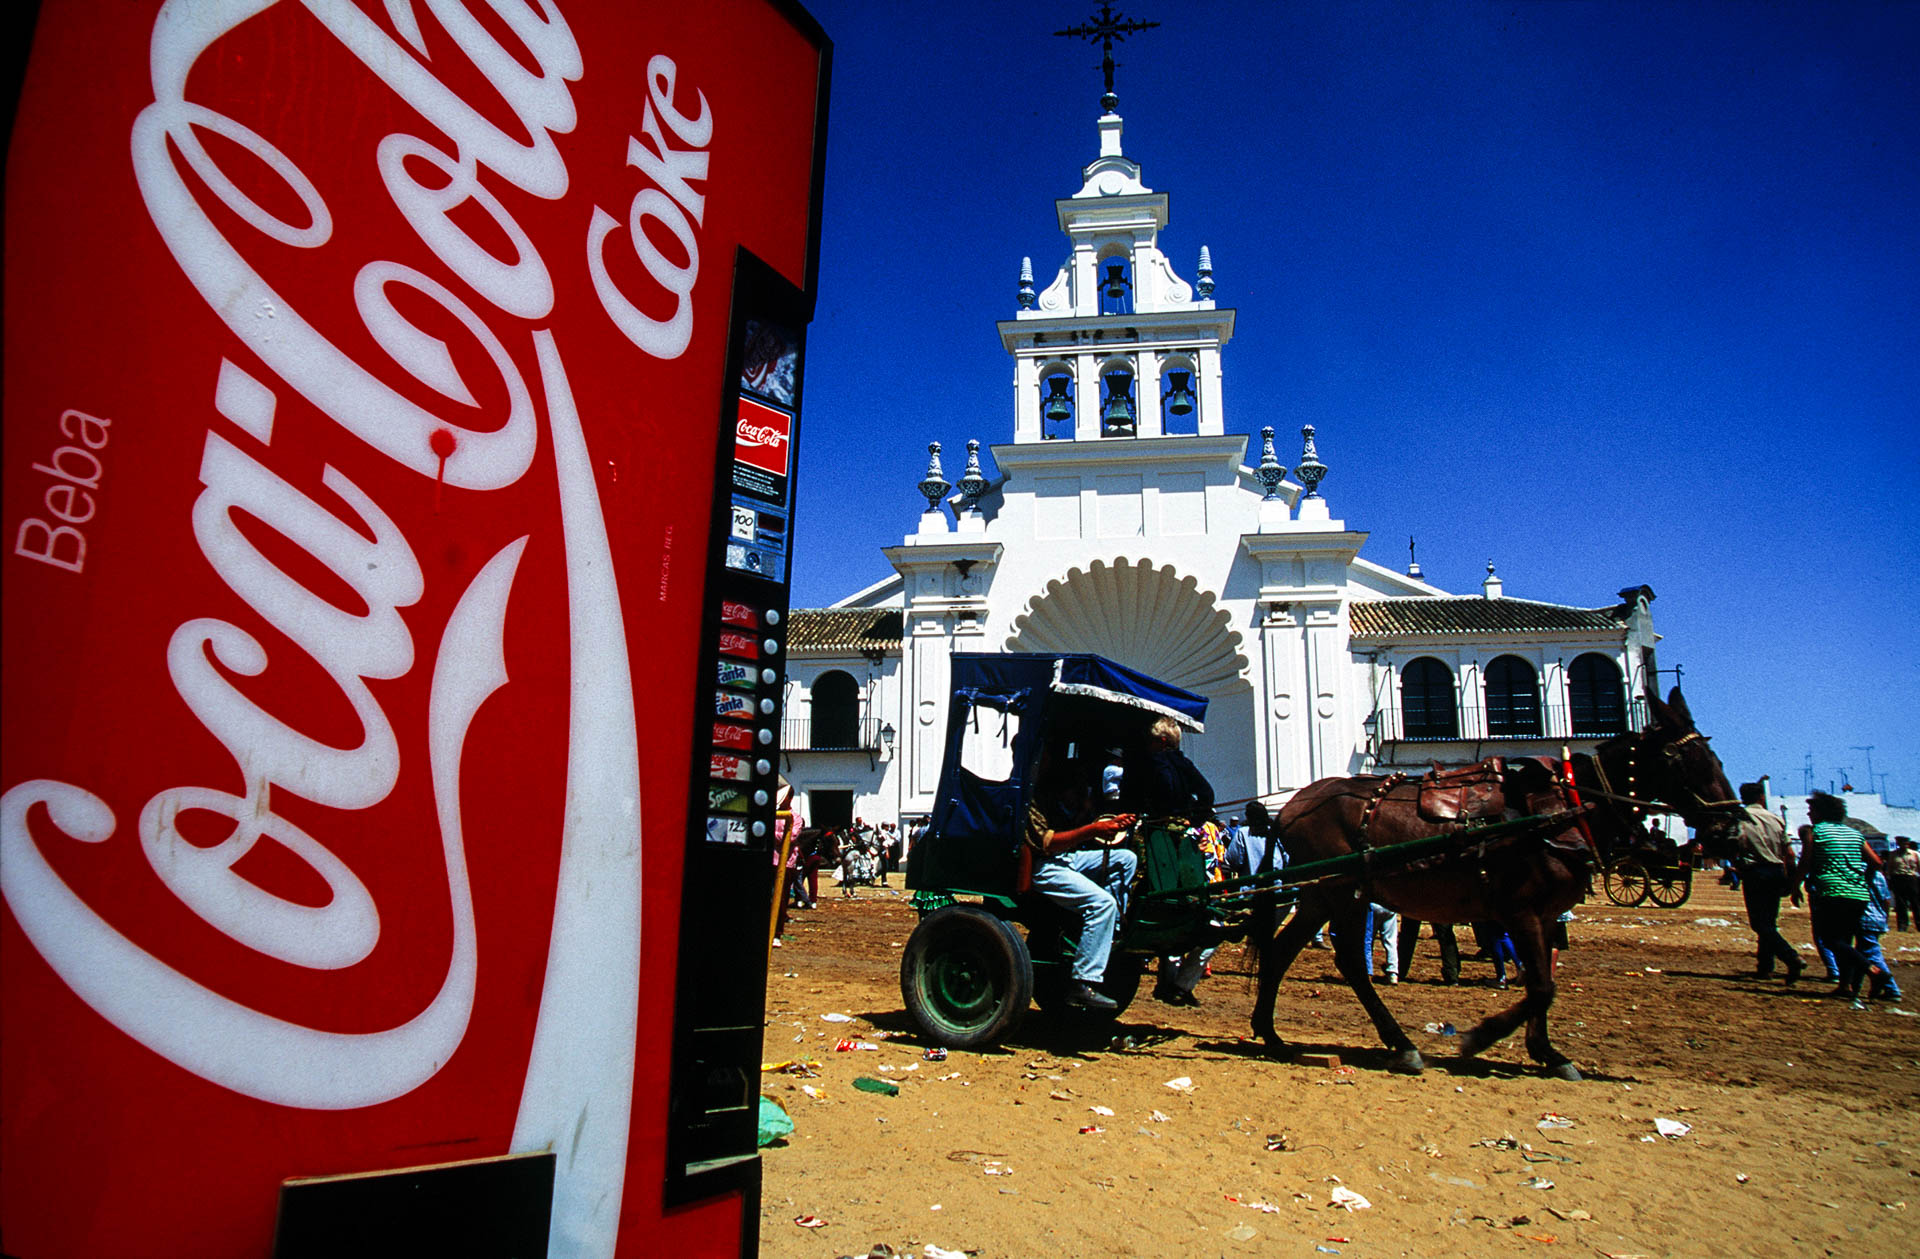 The miracle around the world: El Rocio, a Coca-Cola distributer in front of the sanctuary.